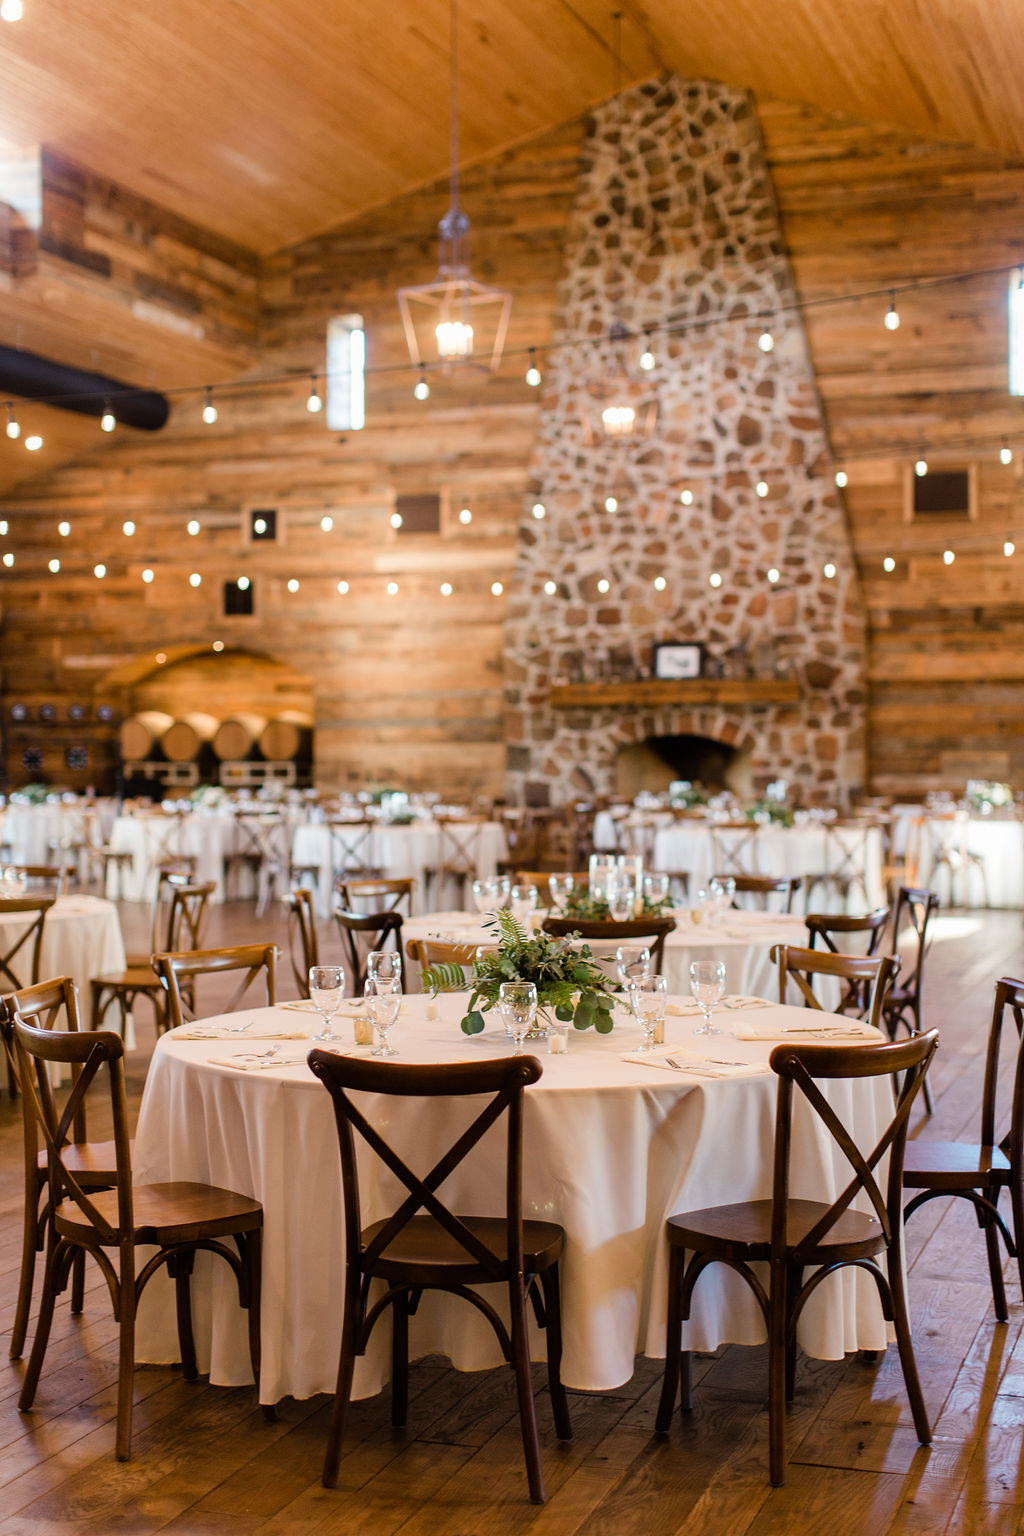 Rustic and Elegant Weddings Set Up | Houston Weddings